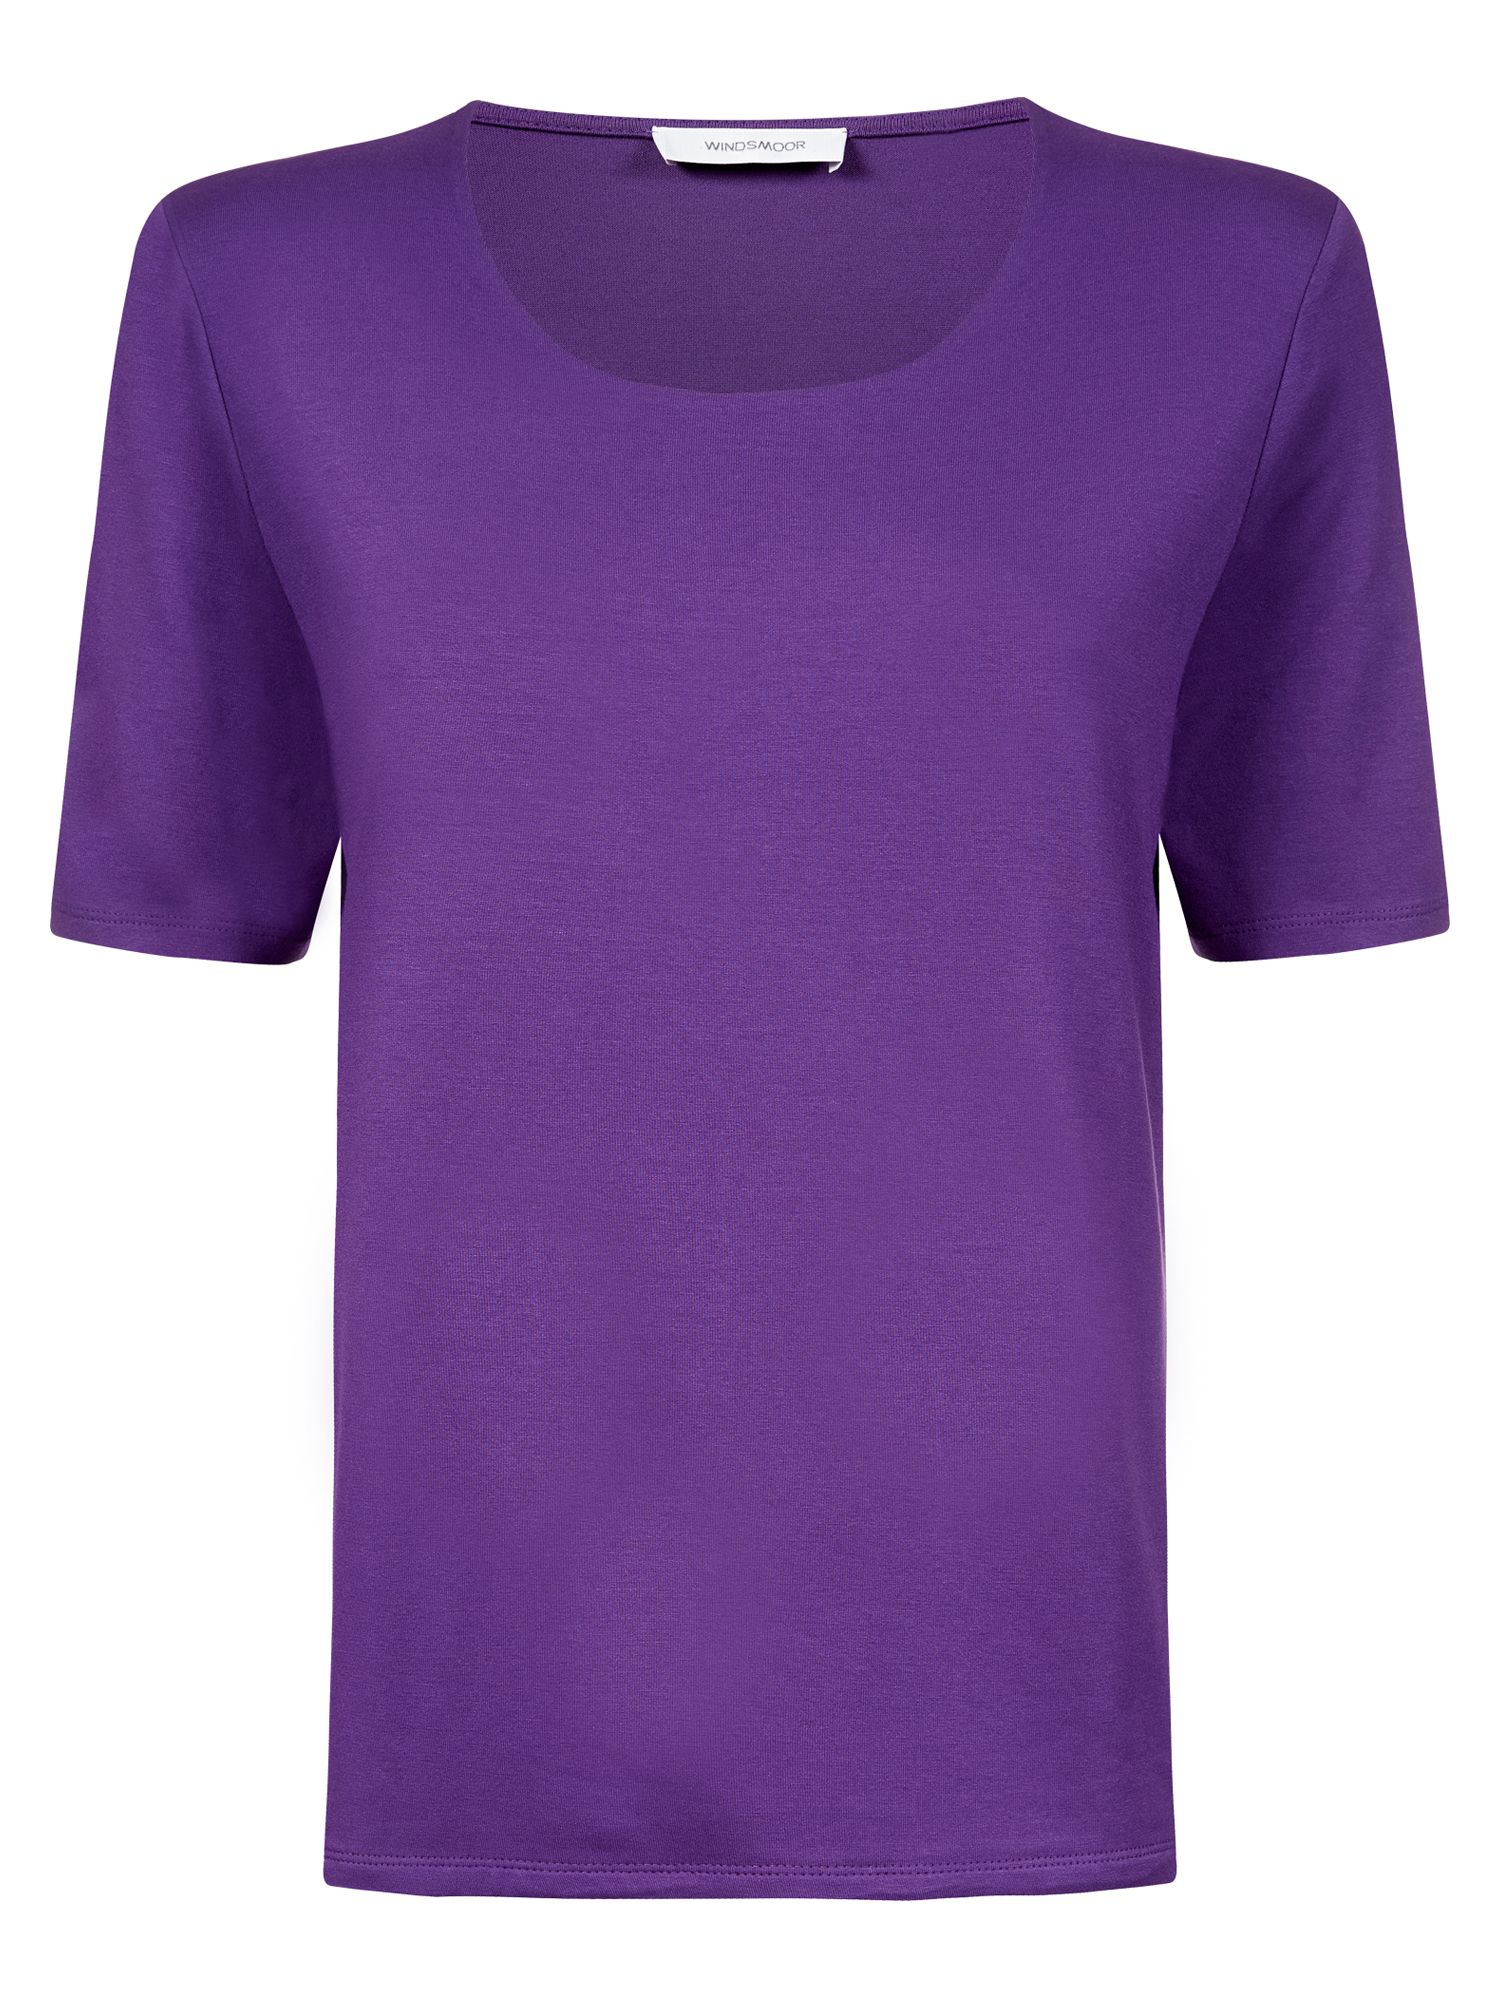 Purple basic top